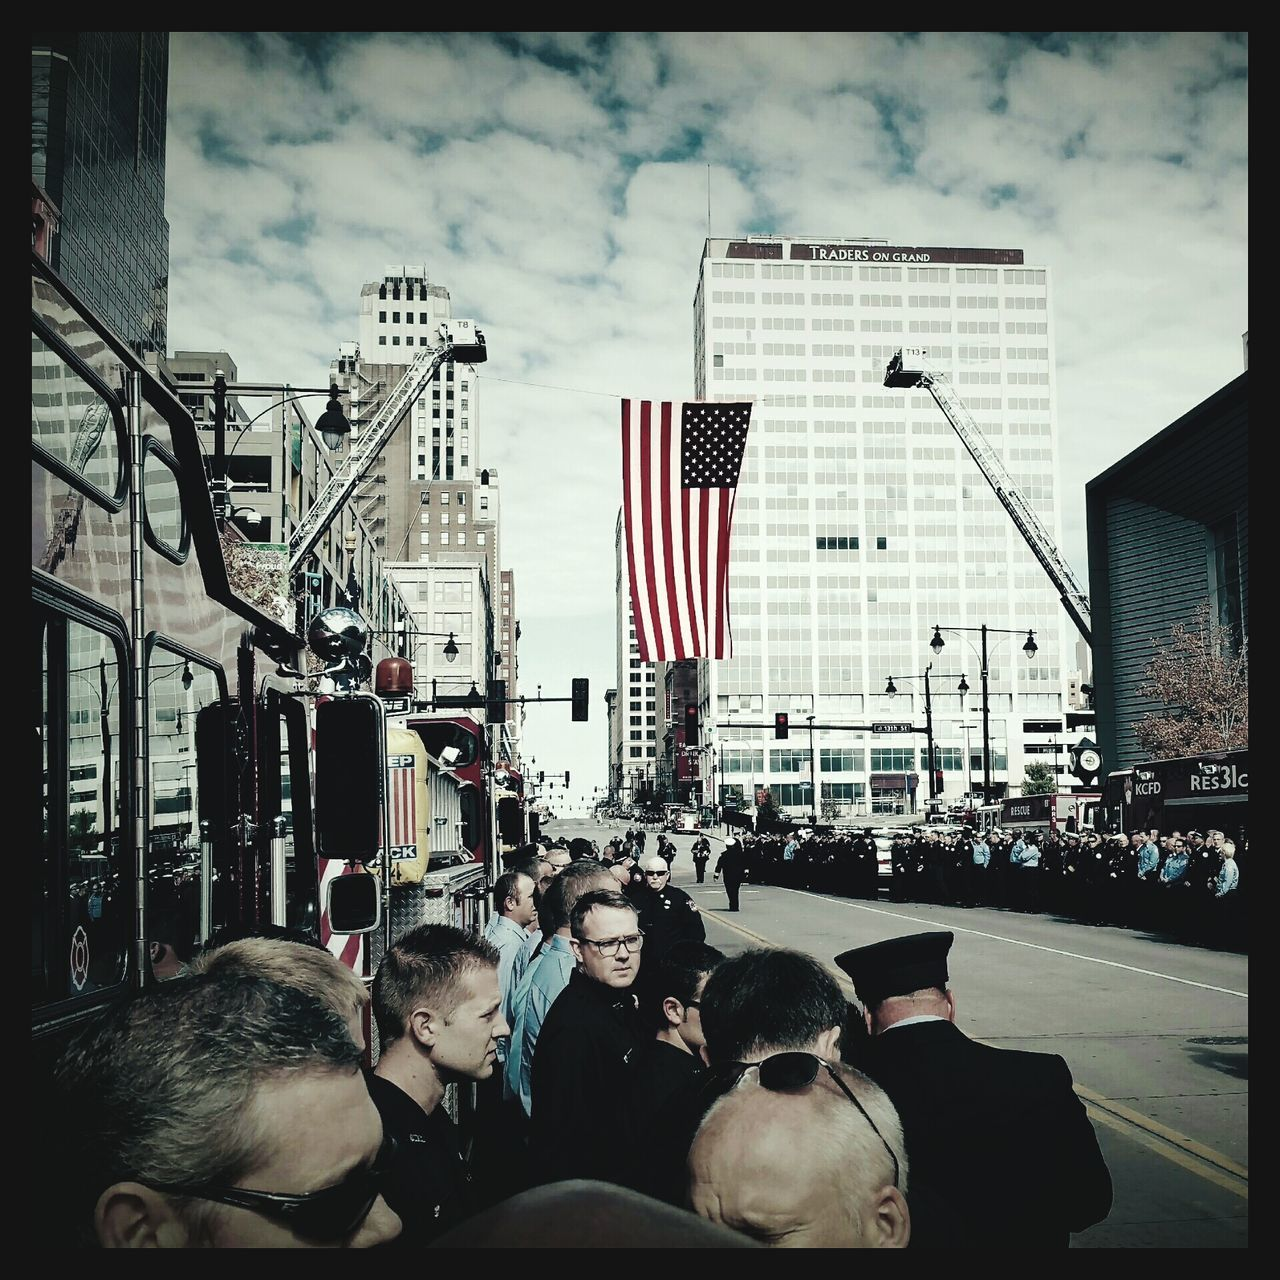 Firefighter Mesh & Leggio Service at Sprint Center Firefighter Sacrifice Firefightersmemorial Kansascitysbravest First Eyeem Photo